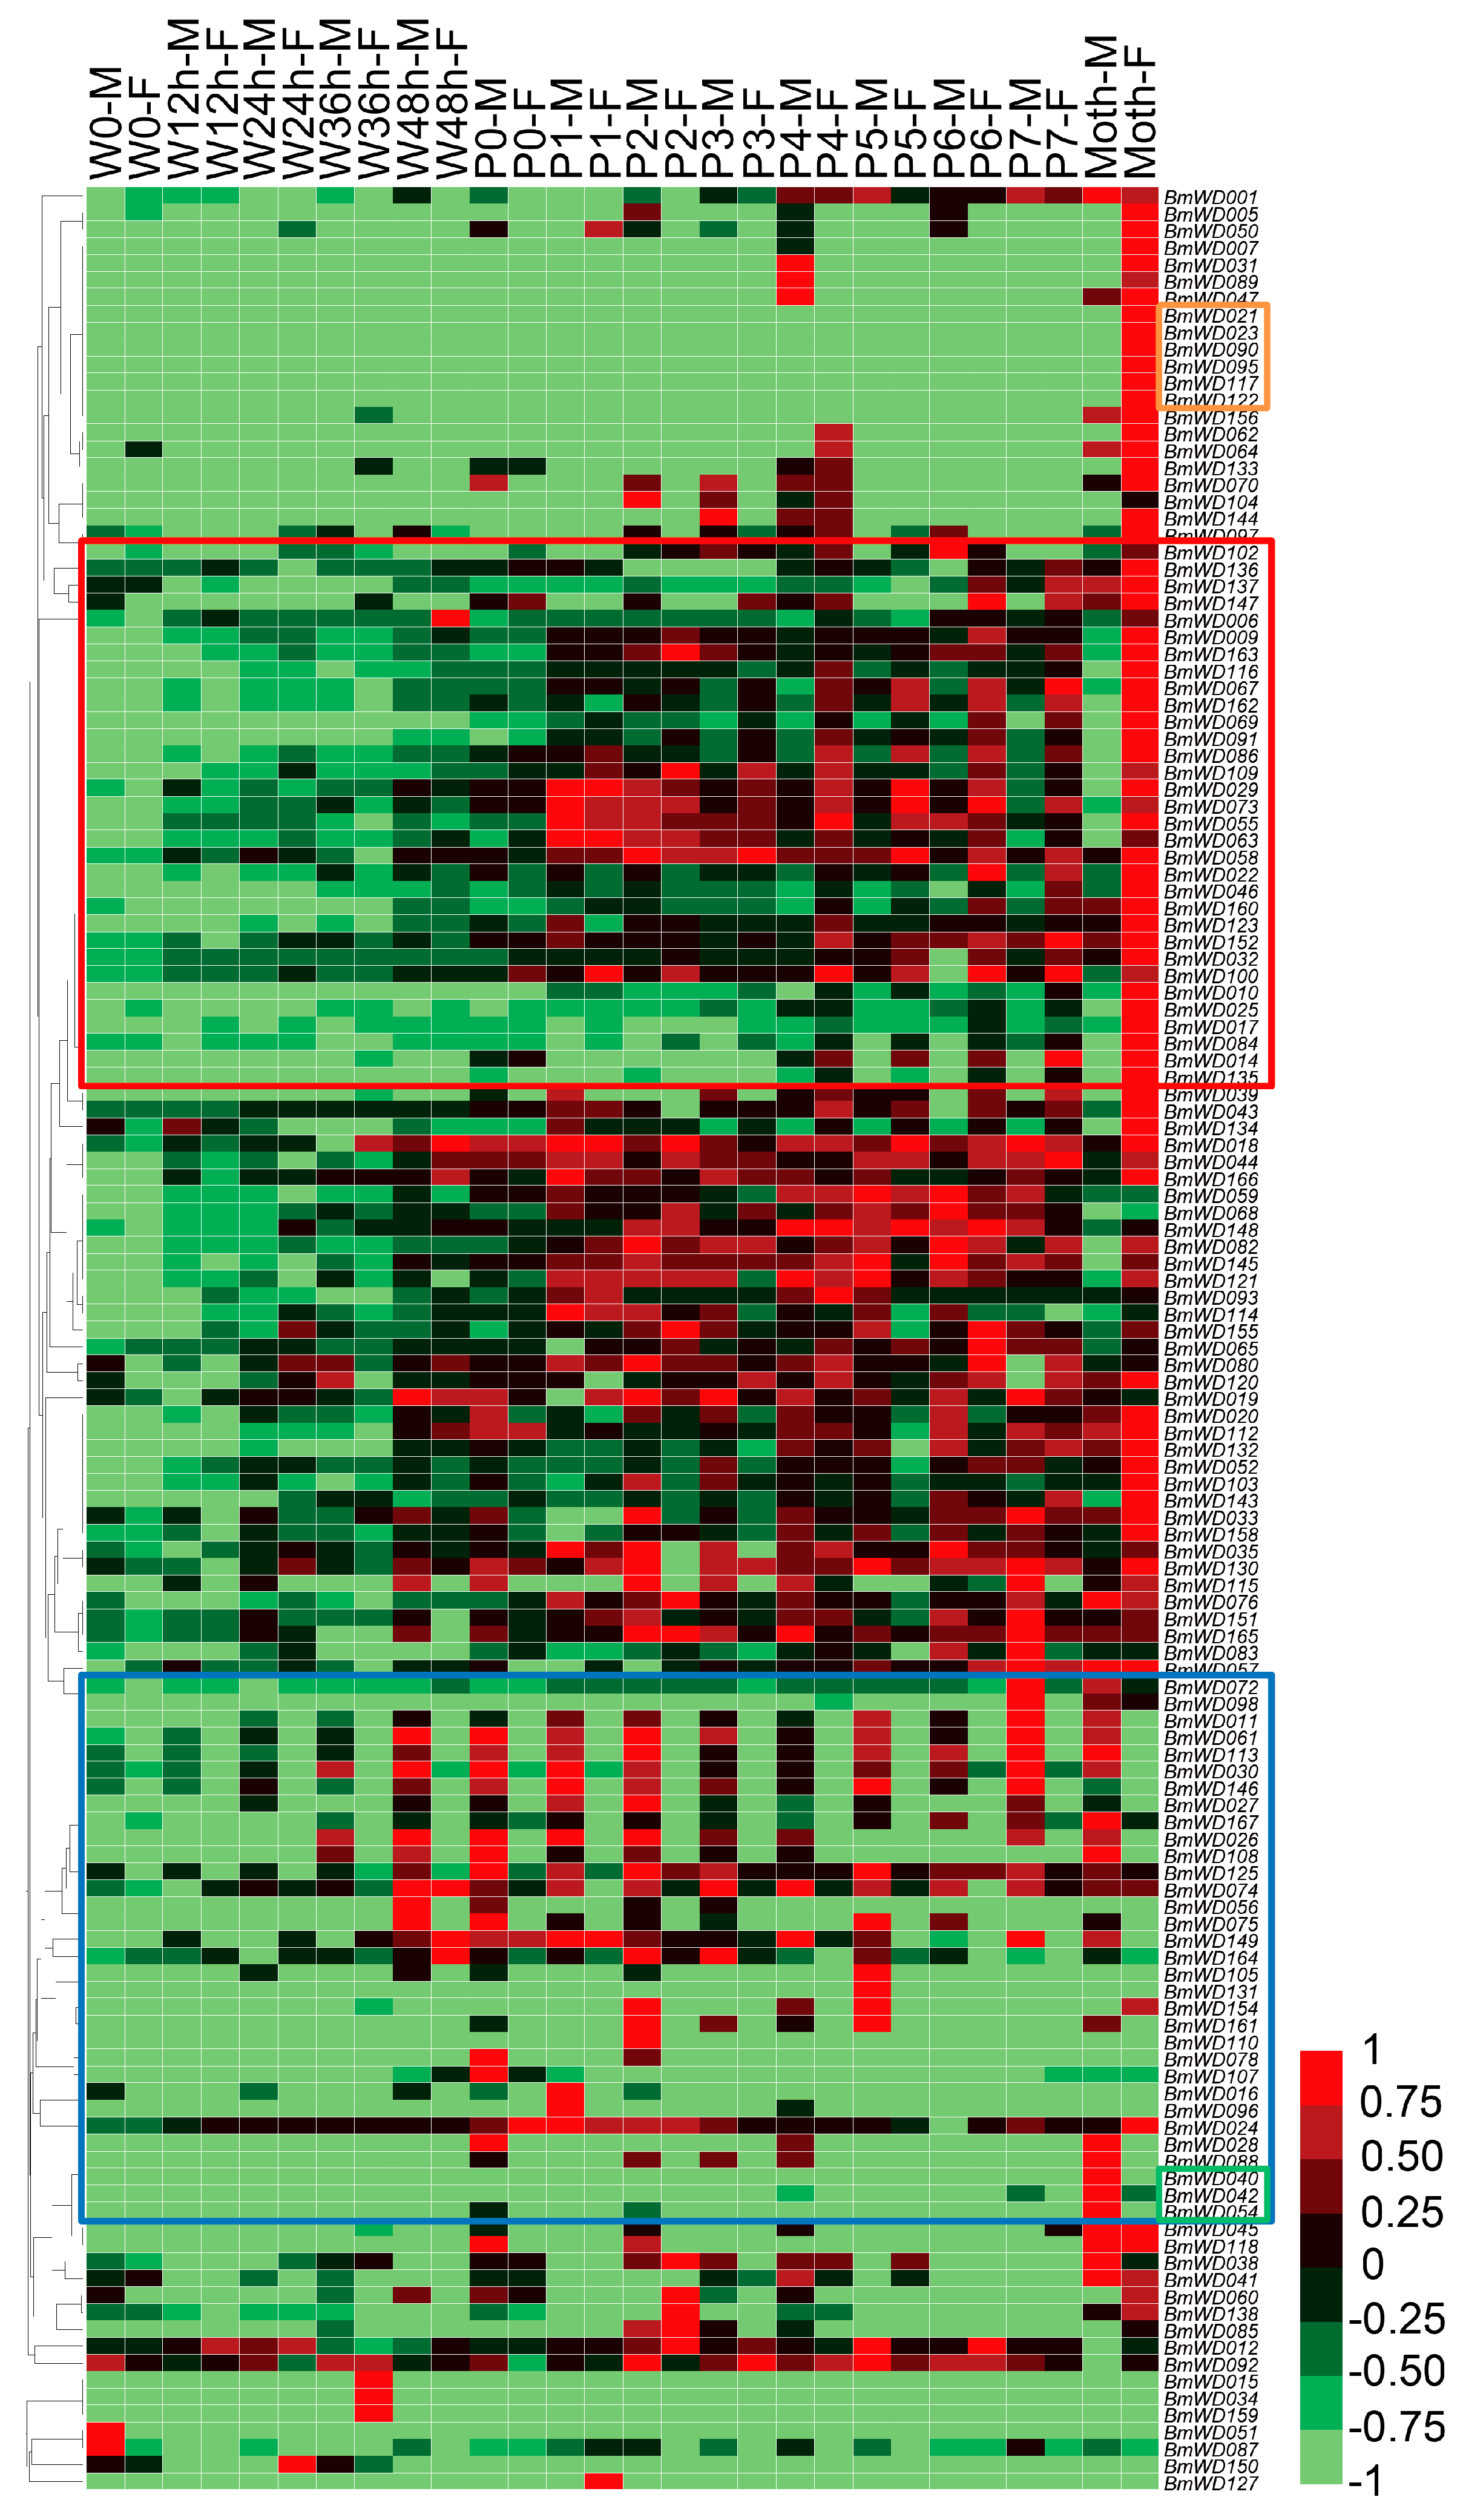 Ijms free full text genome wide identification and ijms 19 00527 g009 publicscrutiny Image collections